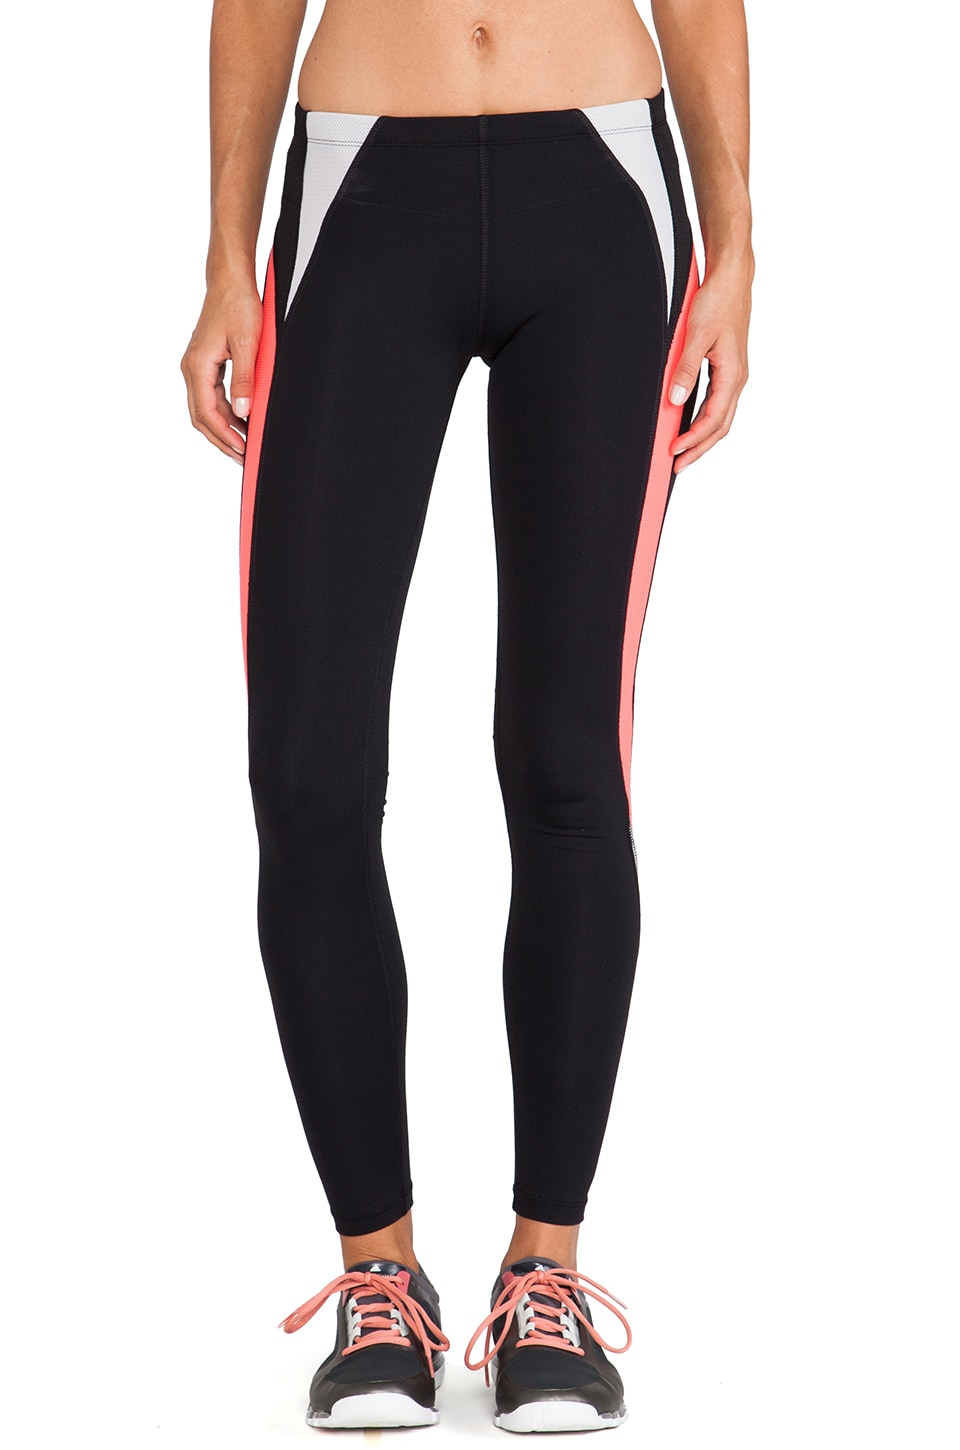 Lorna Jane Fierce Core Stability Full Length Tight in Black